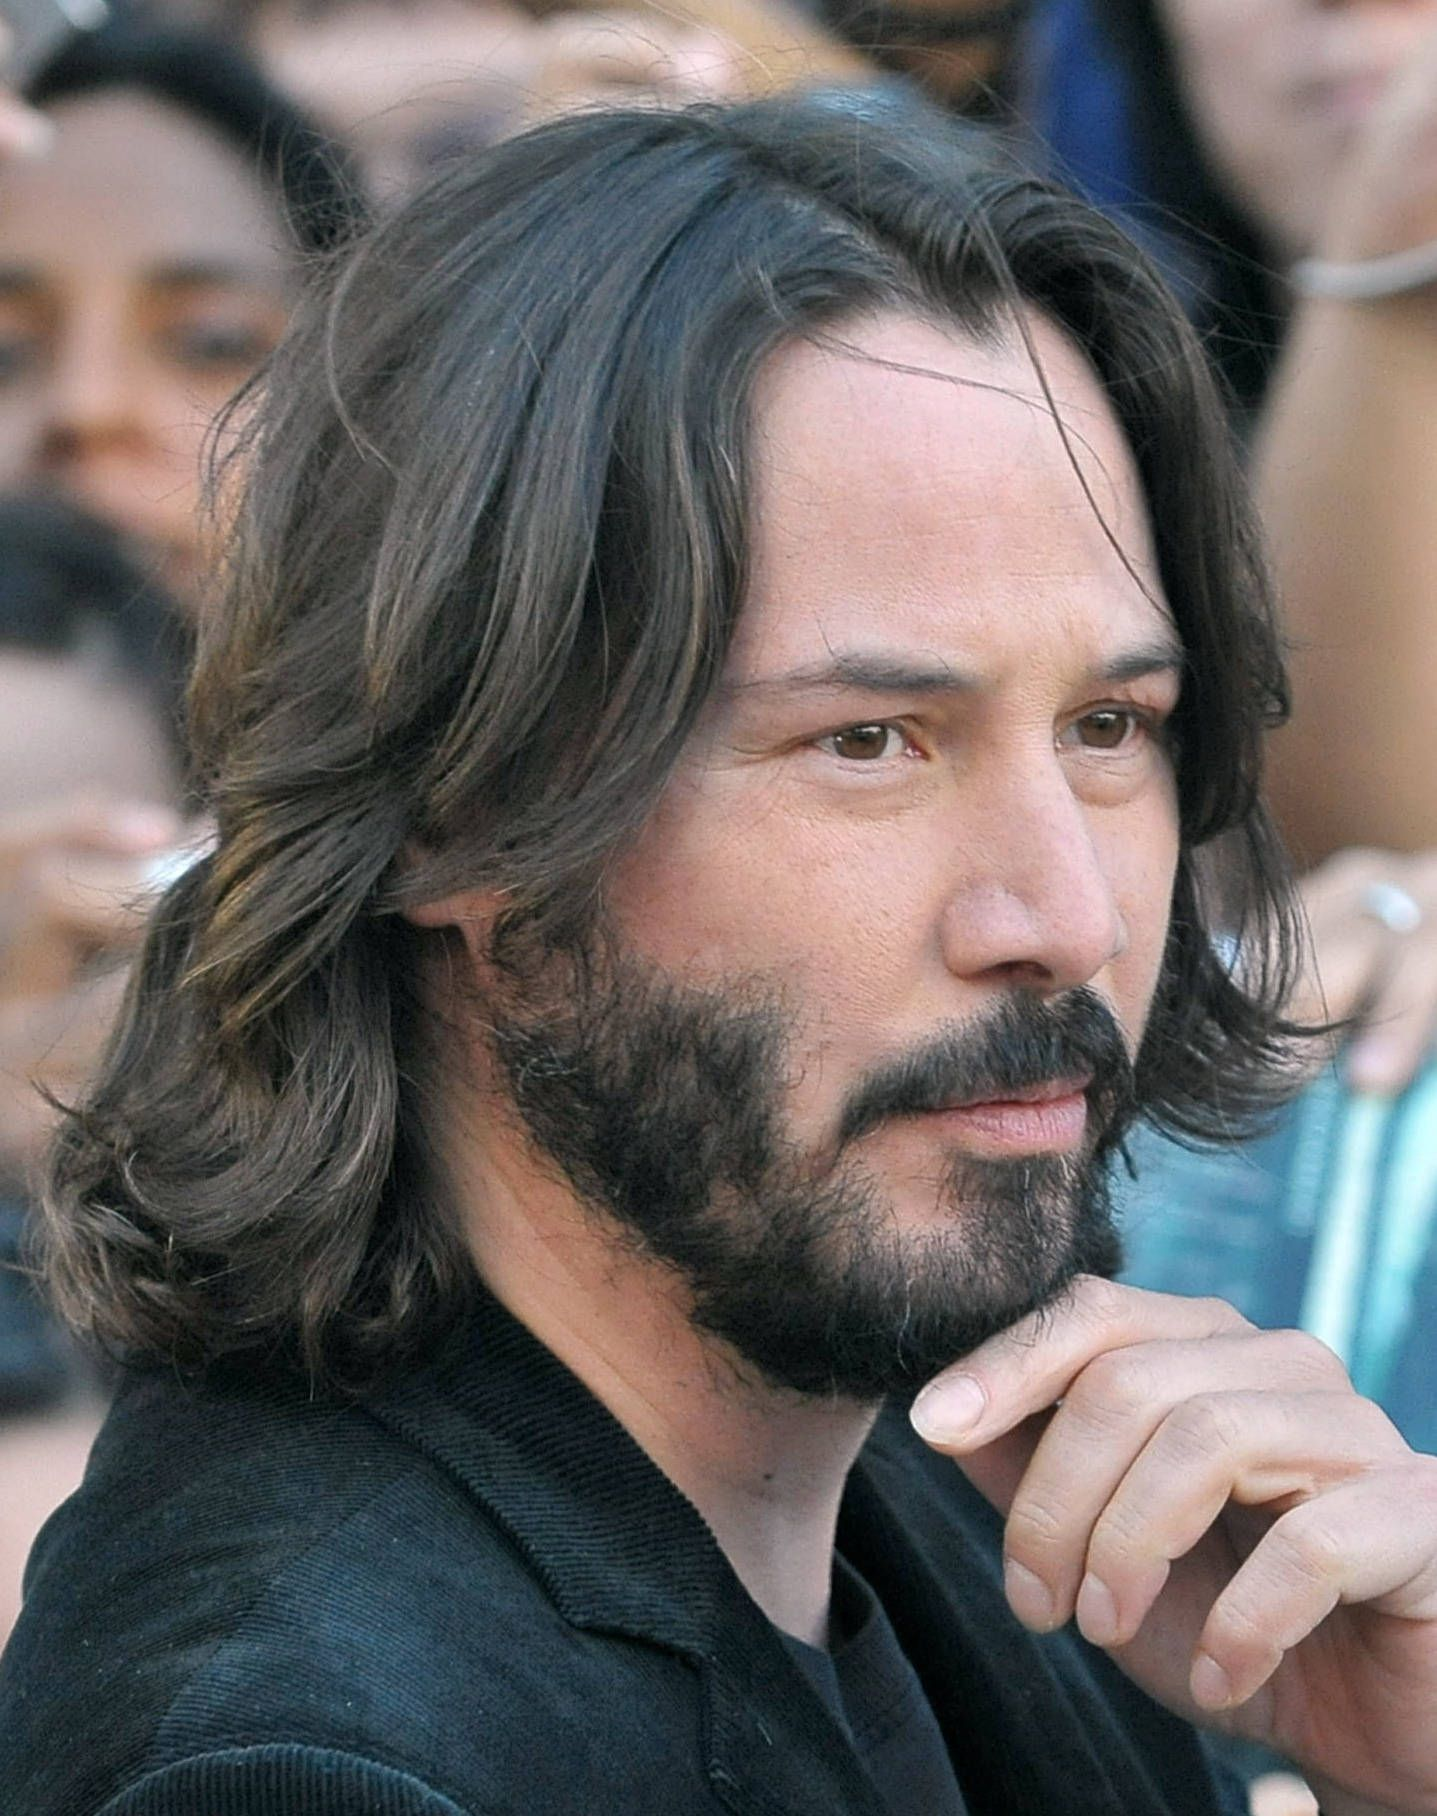 If You Want To Grow Your Hair Out Follow The Example Of These Leading Men Older Mens Hairstyles Long Hair Styles Men Men S Long Hairstyles